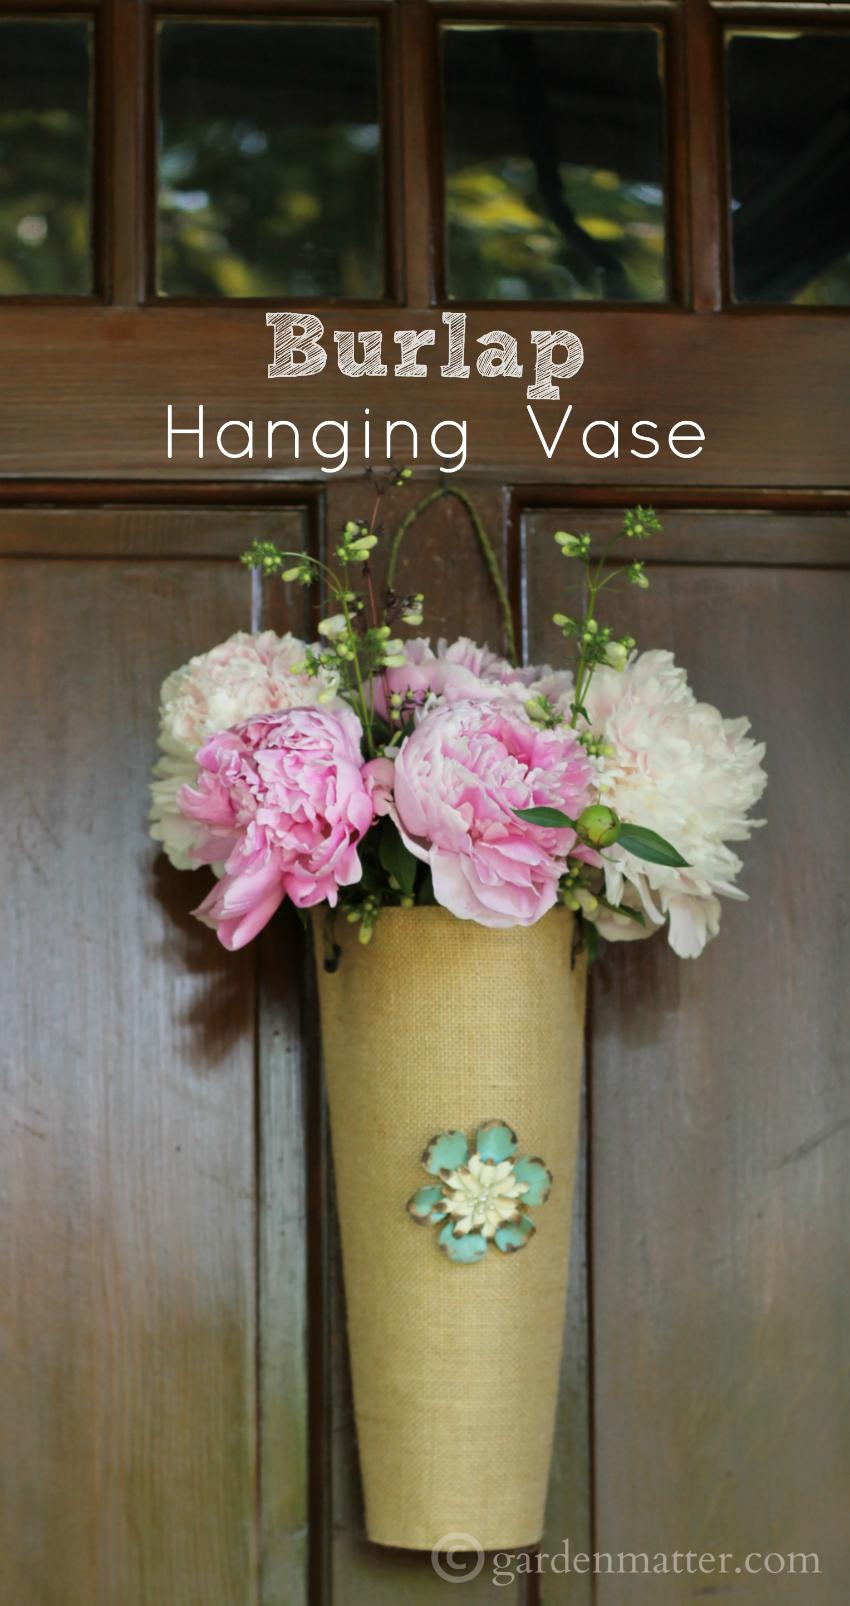 Hanging burlap flower vase learn how to make a simple burlap hanging burlap flower vase from a placemat the reviewsmspy